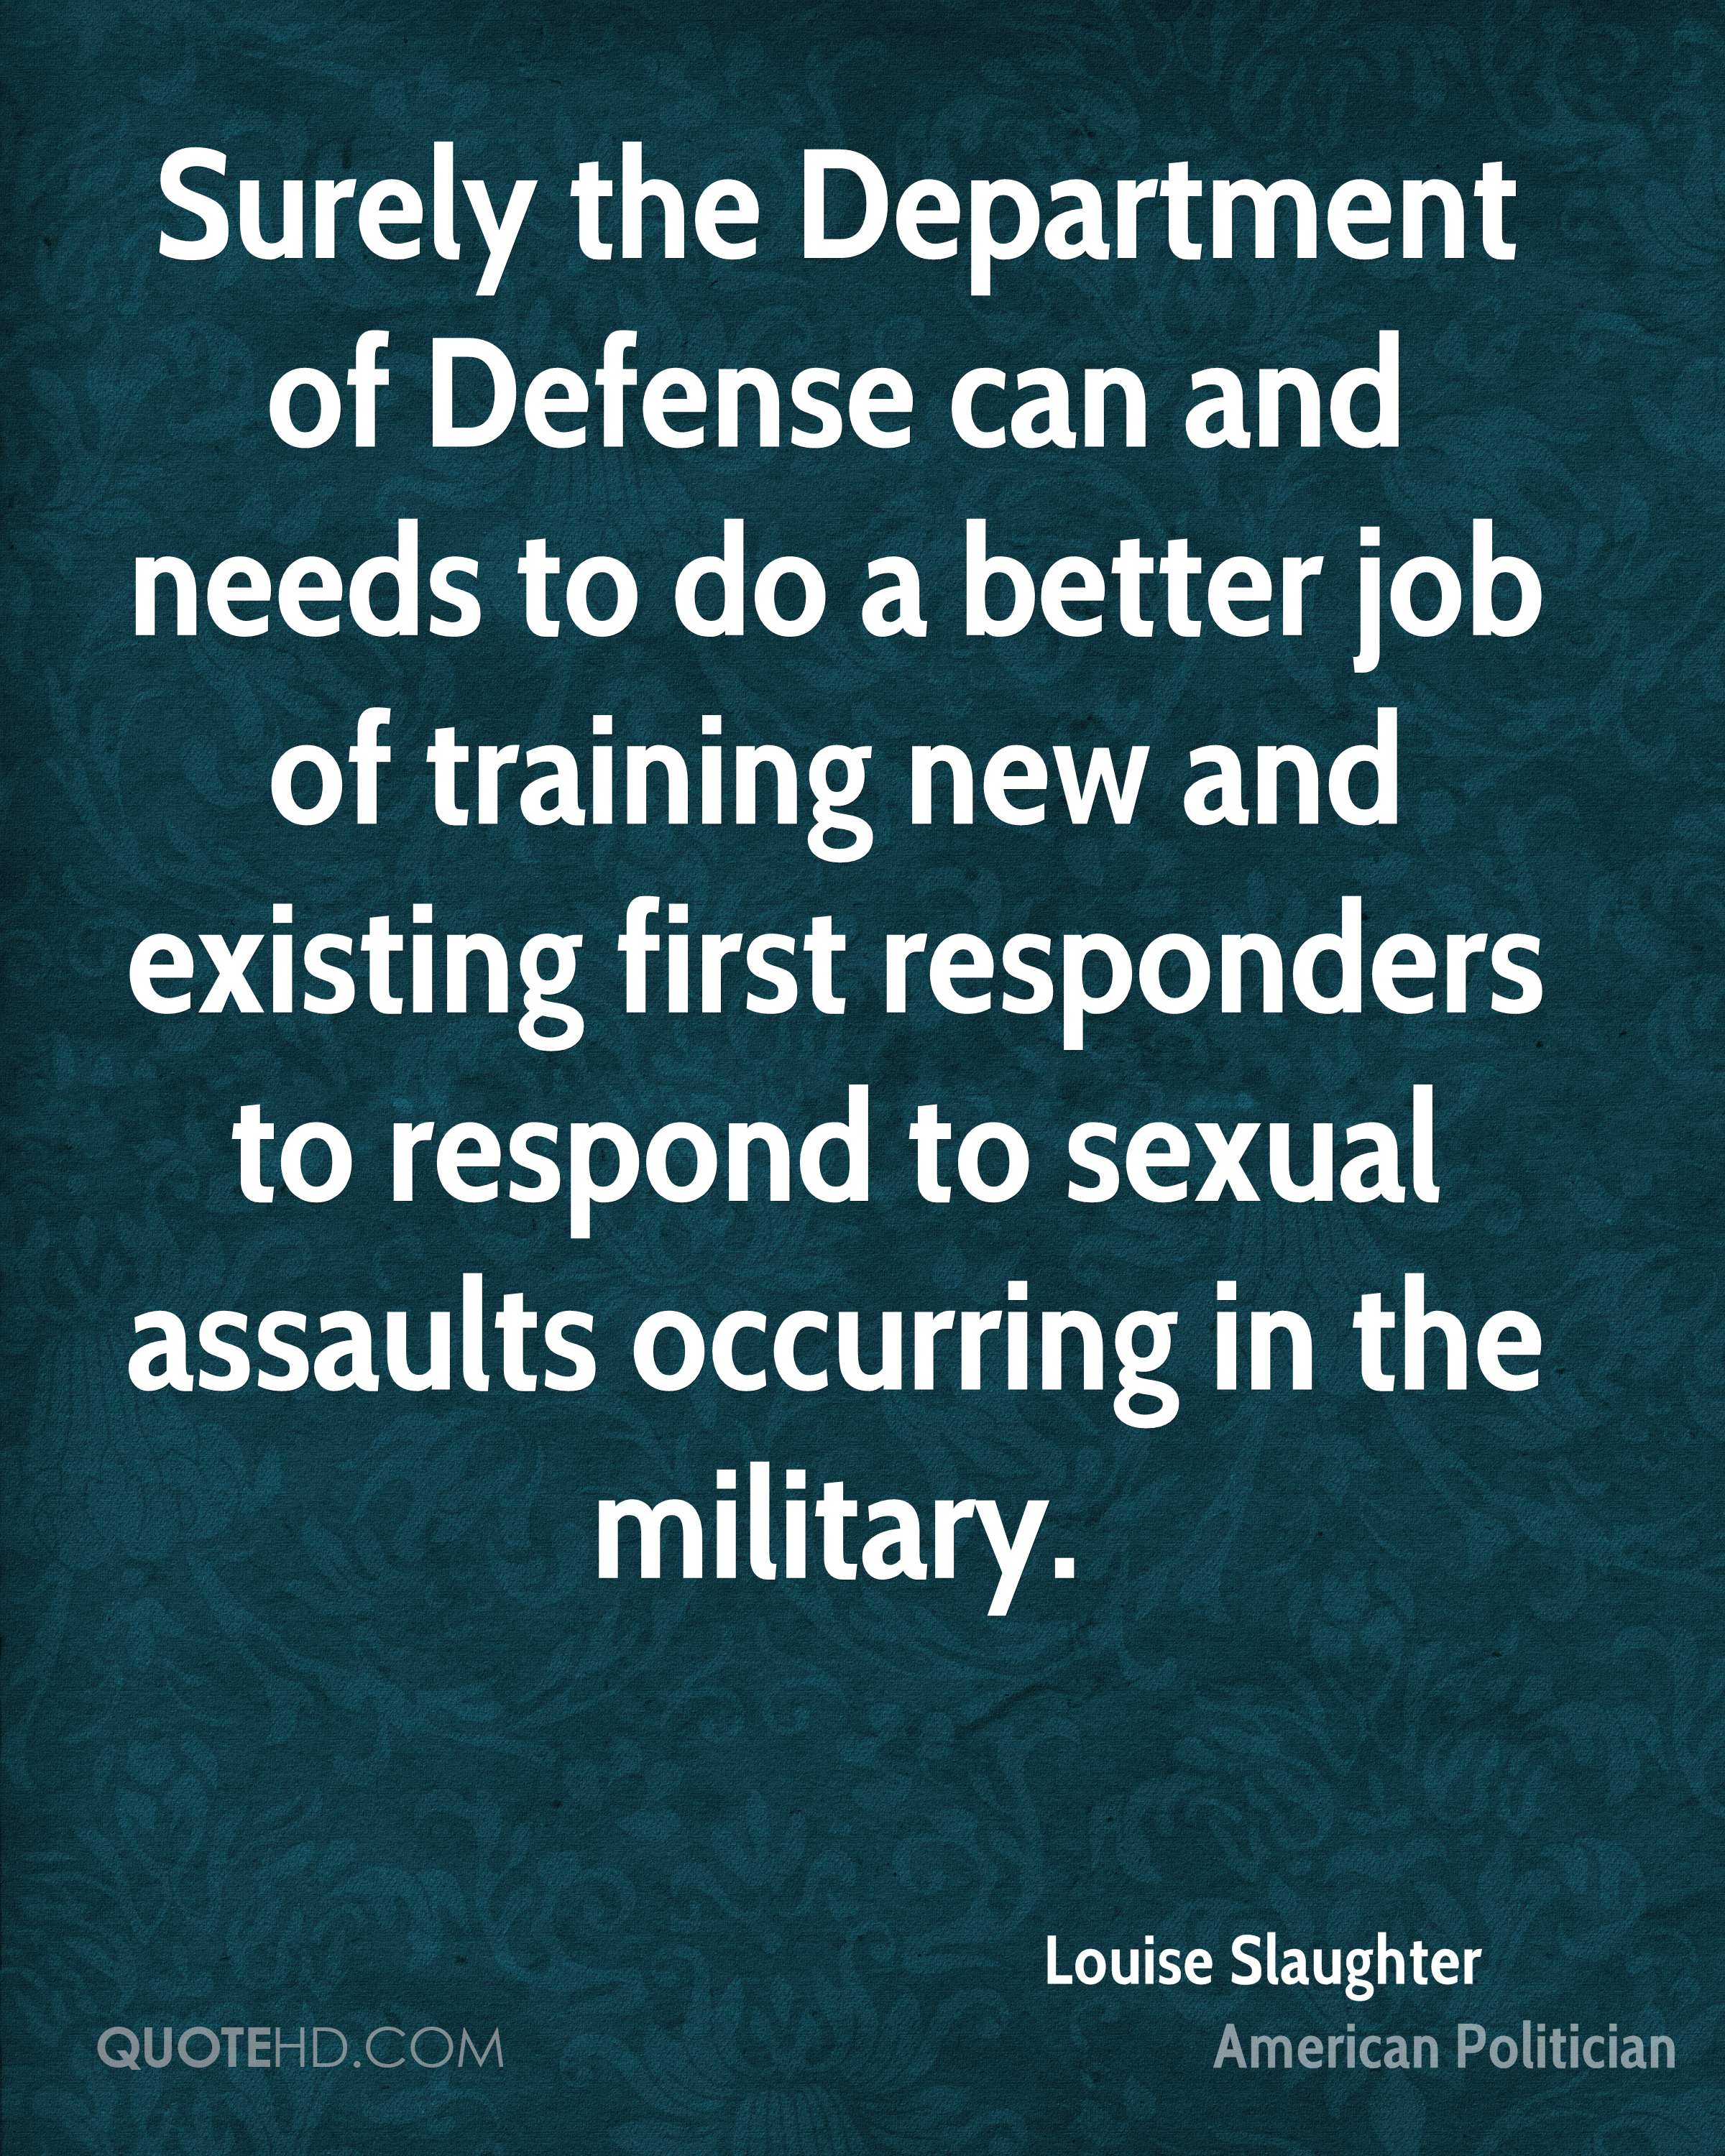 Surely the Department of Defense can and needs to do a better job of training new and existing first responders to respond to sexual assaults occurring in the military.